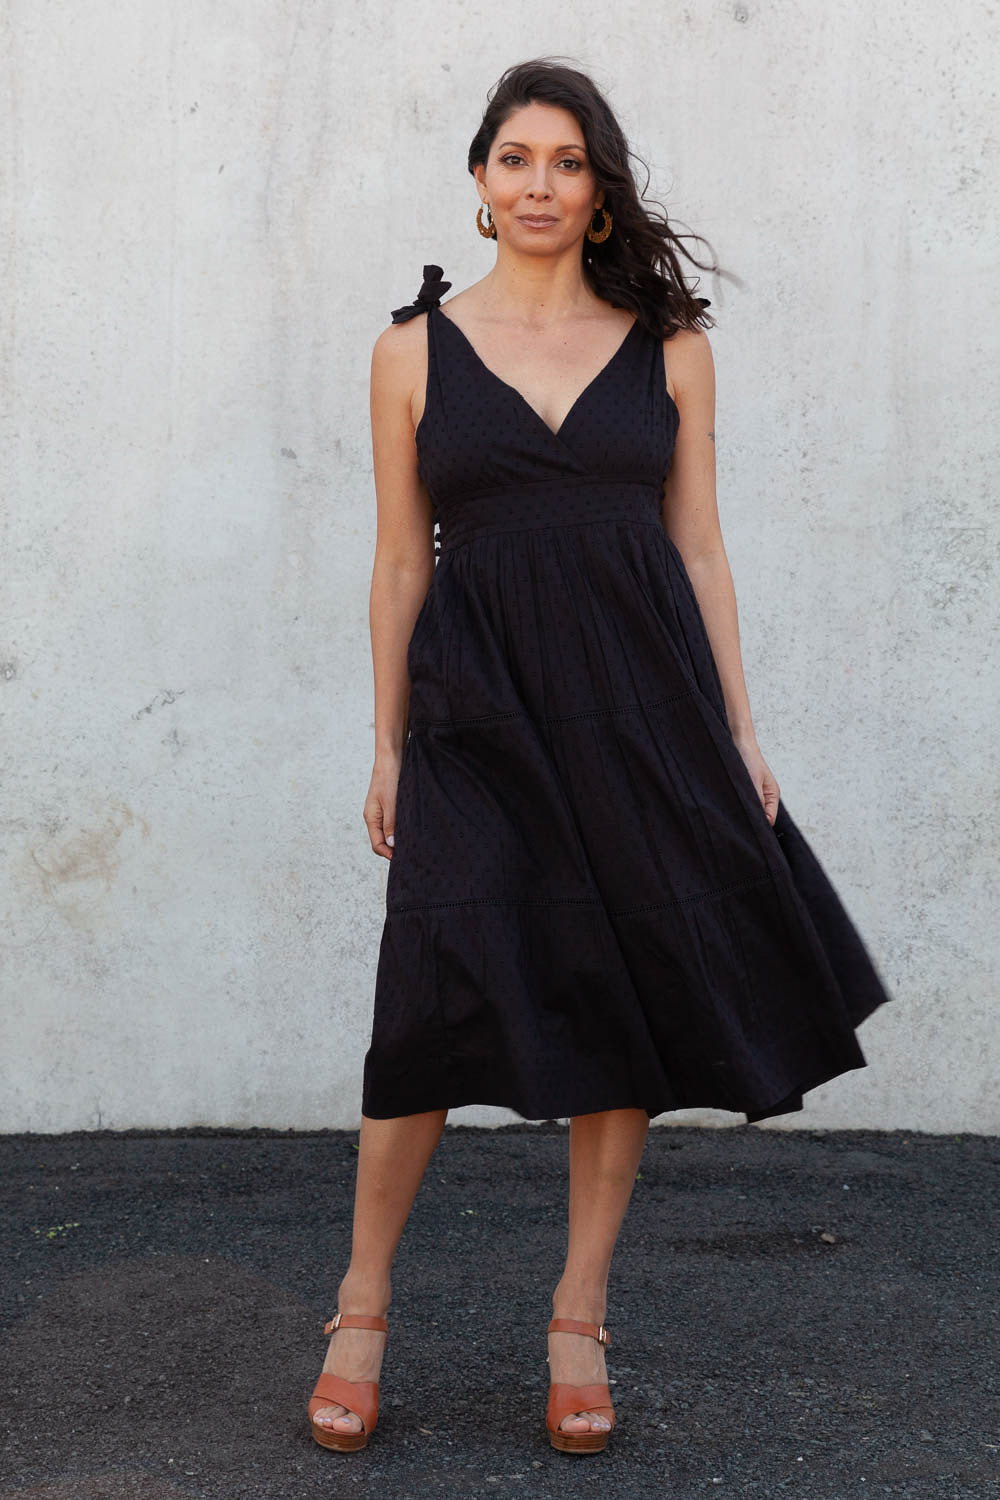 The Chrysler Dress - Black